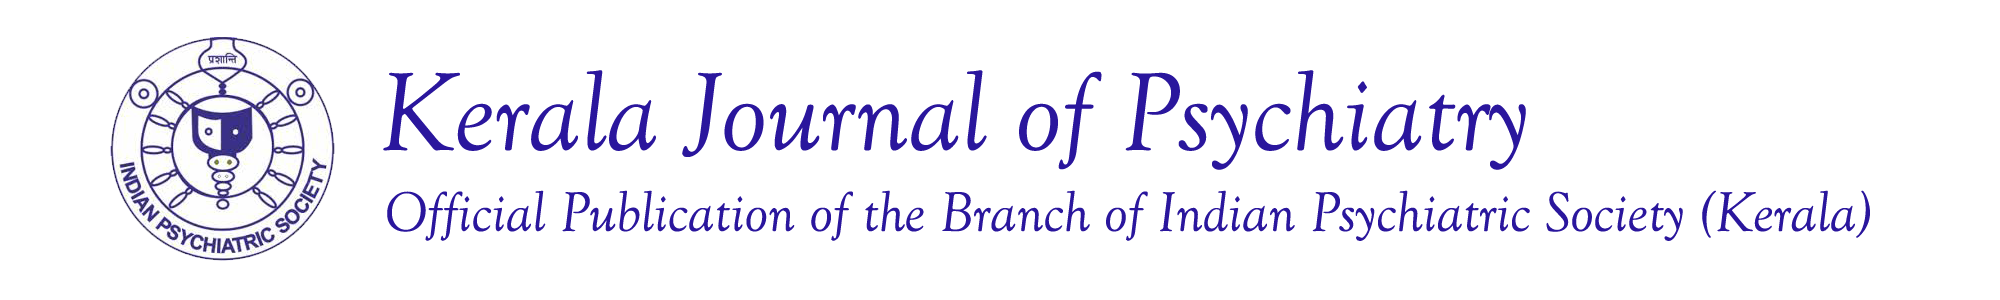 Kerala Journal of Psychiatry